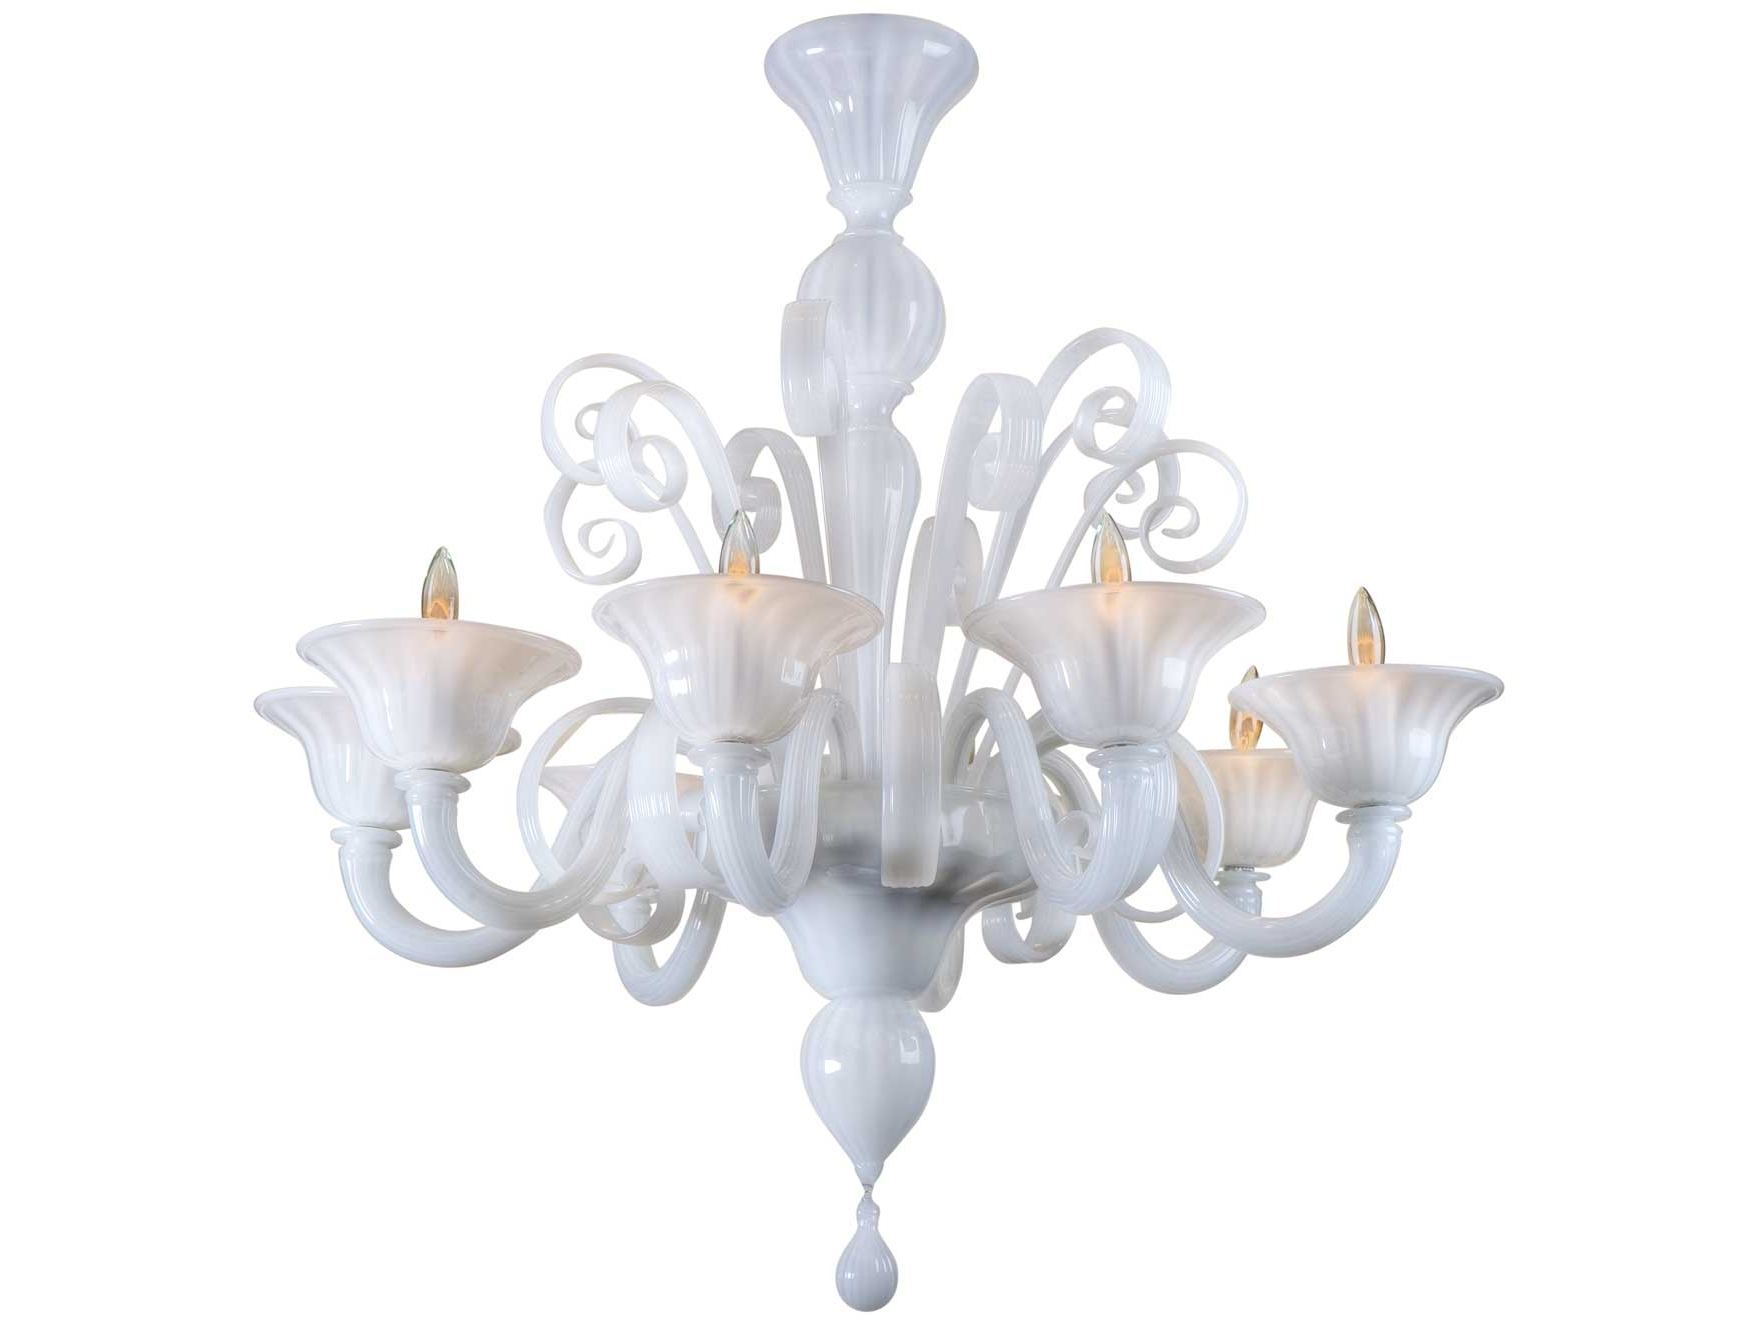 Nella Vetrina White Murano 8 Murano Chandelier In White Glass With Best And Newest White Chandeliers (View 18 of 20)